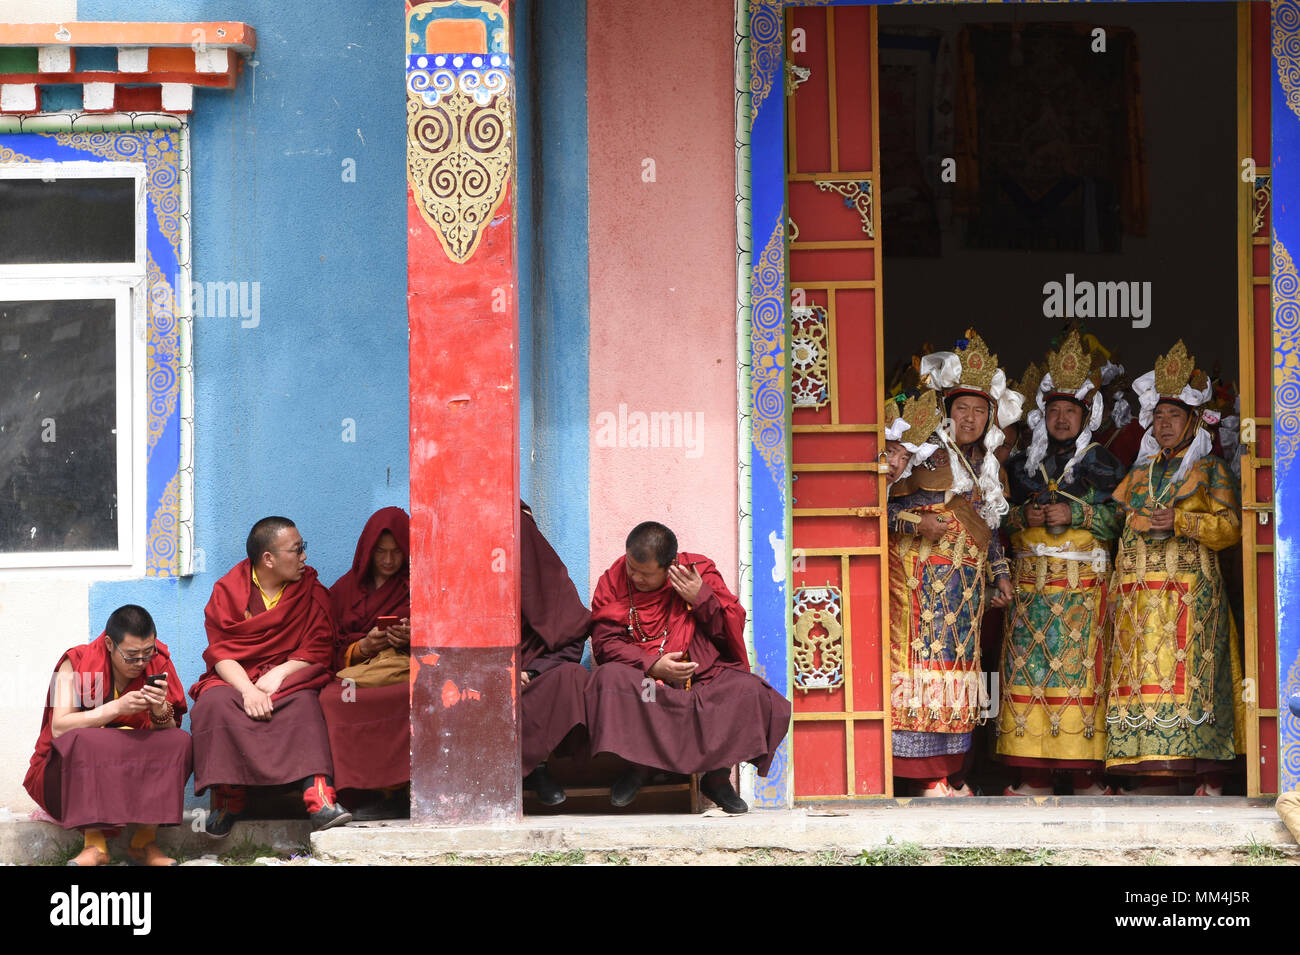 Tibetan monks readying to dance at the Jinganqumo purification festival in Dege, Sichuan, China - Stock Image